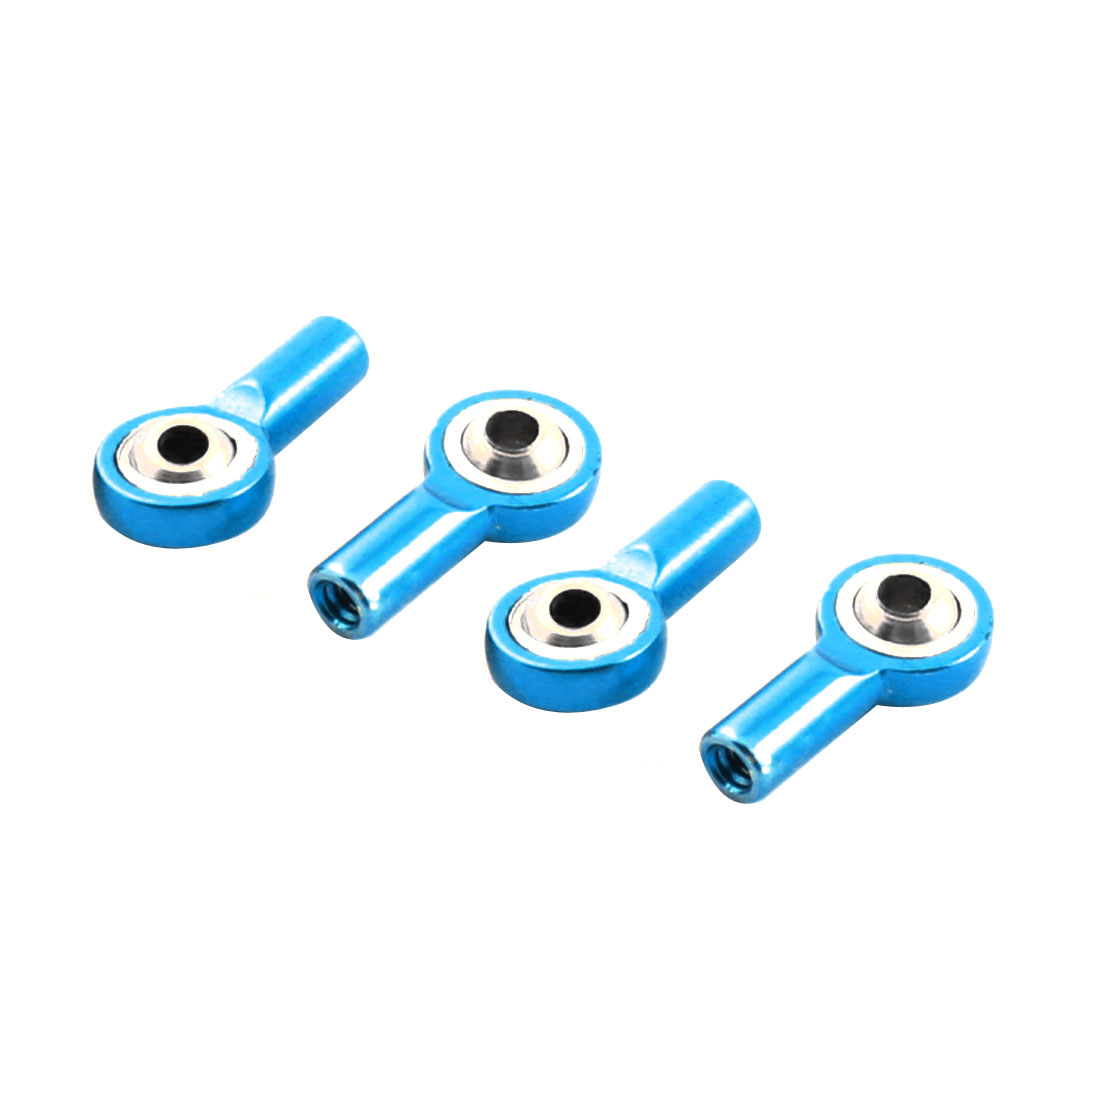 4Pcs Blue Rod End Spherical Brass Pivot Ball Joints Links Connectors M2 2x3.5x15mm for RC Climbing Car